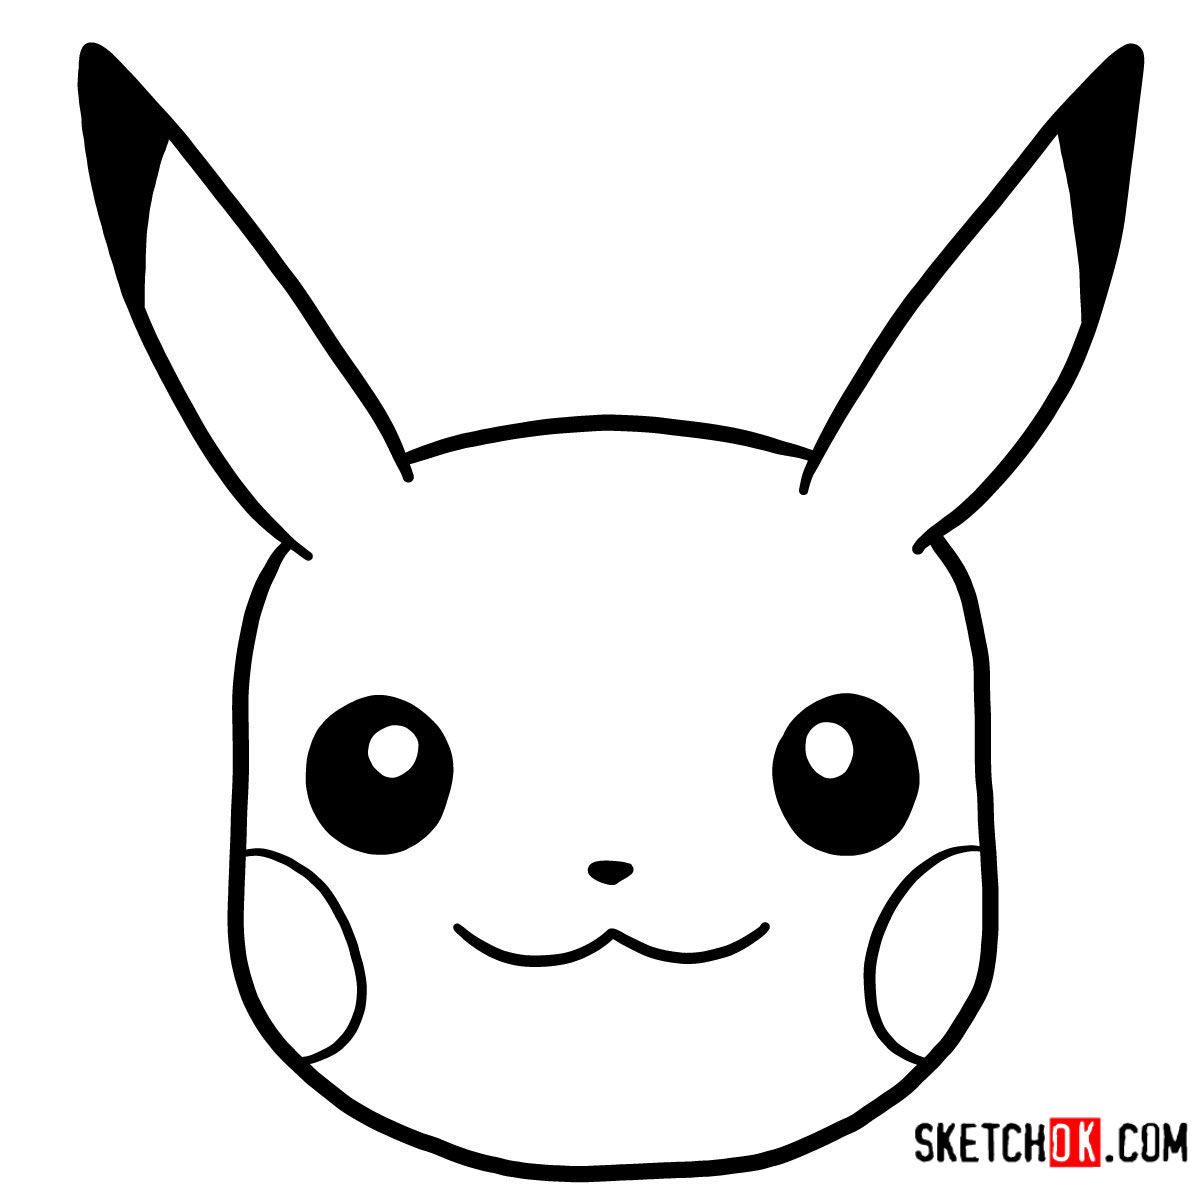 How to draw Pikachu's face | Pokemon - coloring